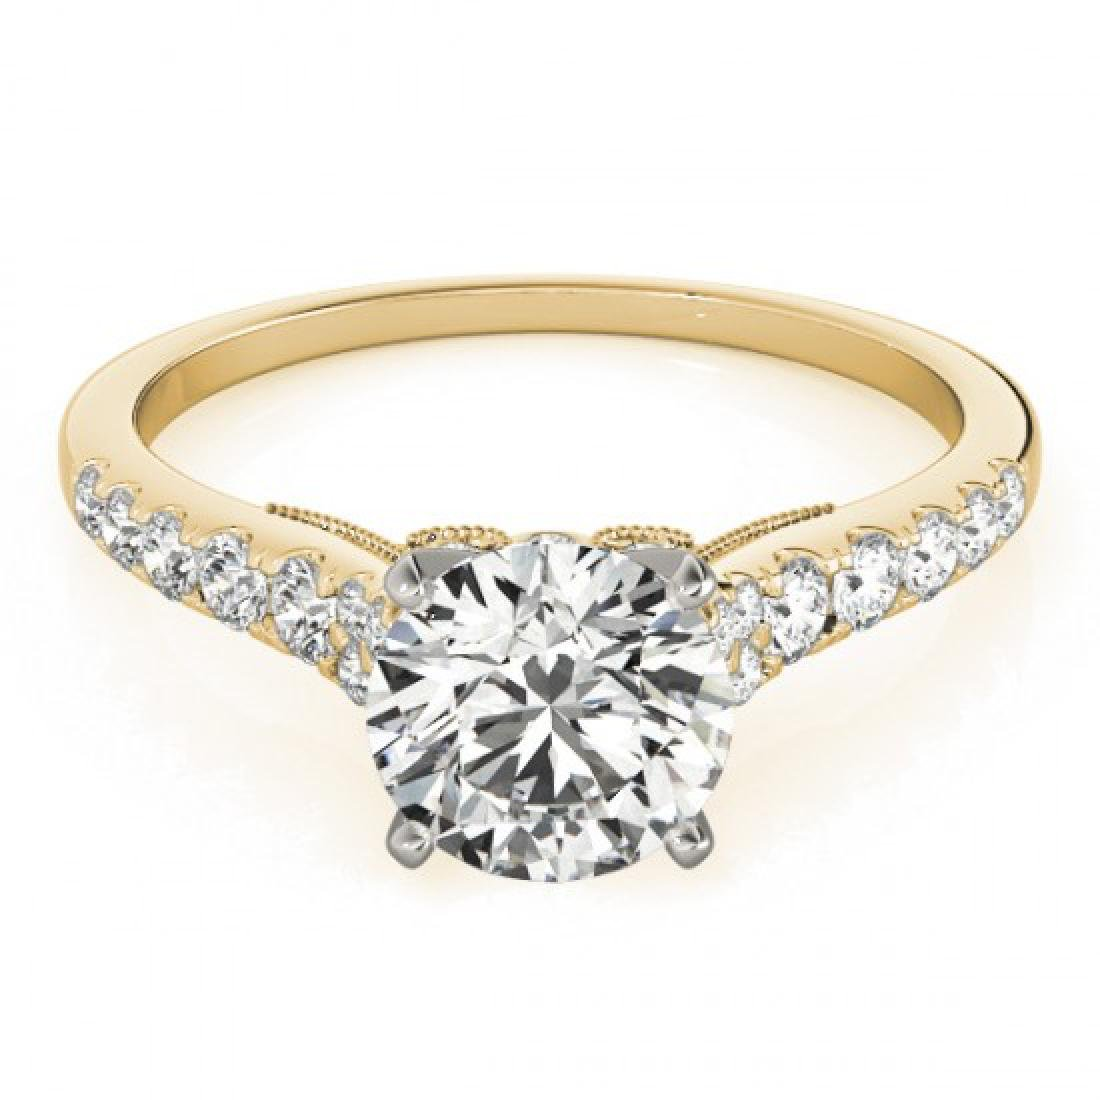 0.65 CTW Certified VS/SI Diamond Solitaire Ring 14K